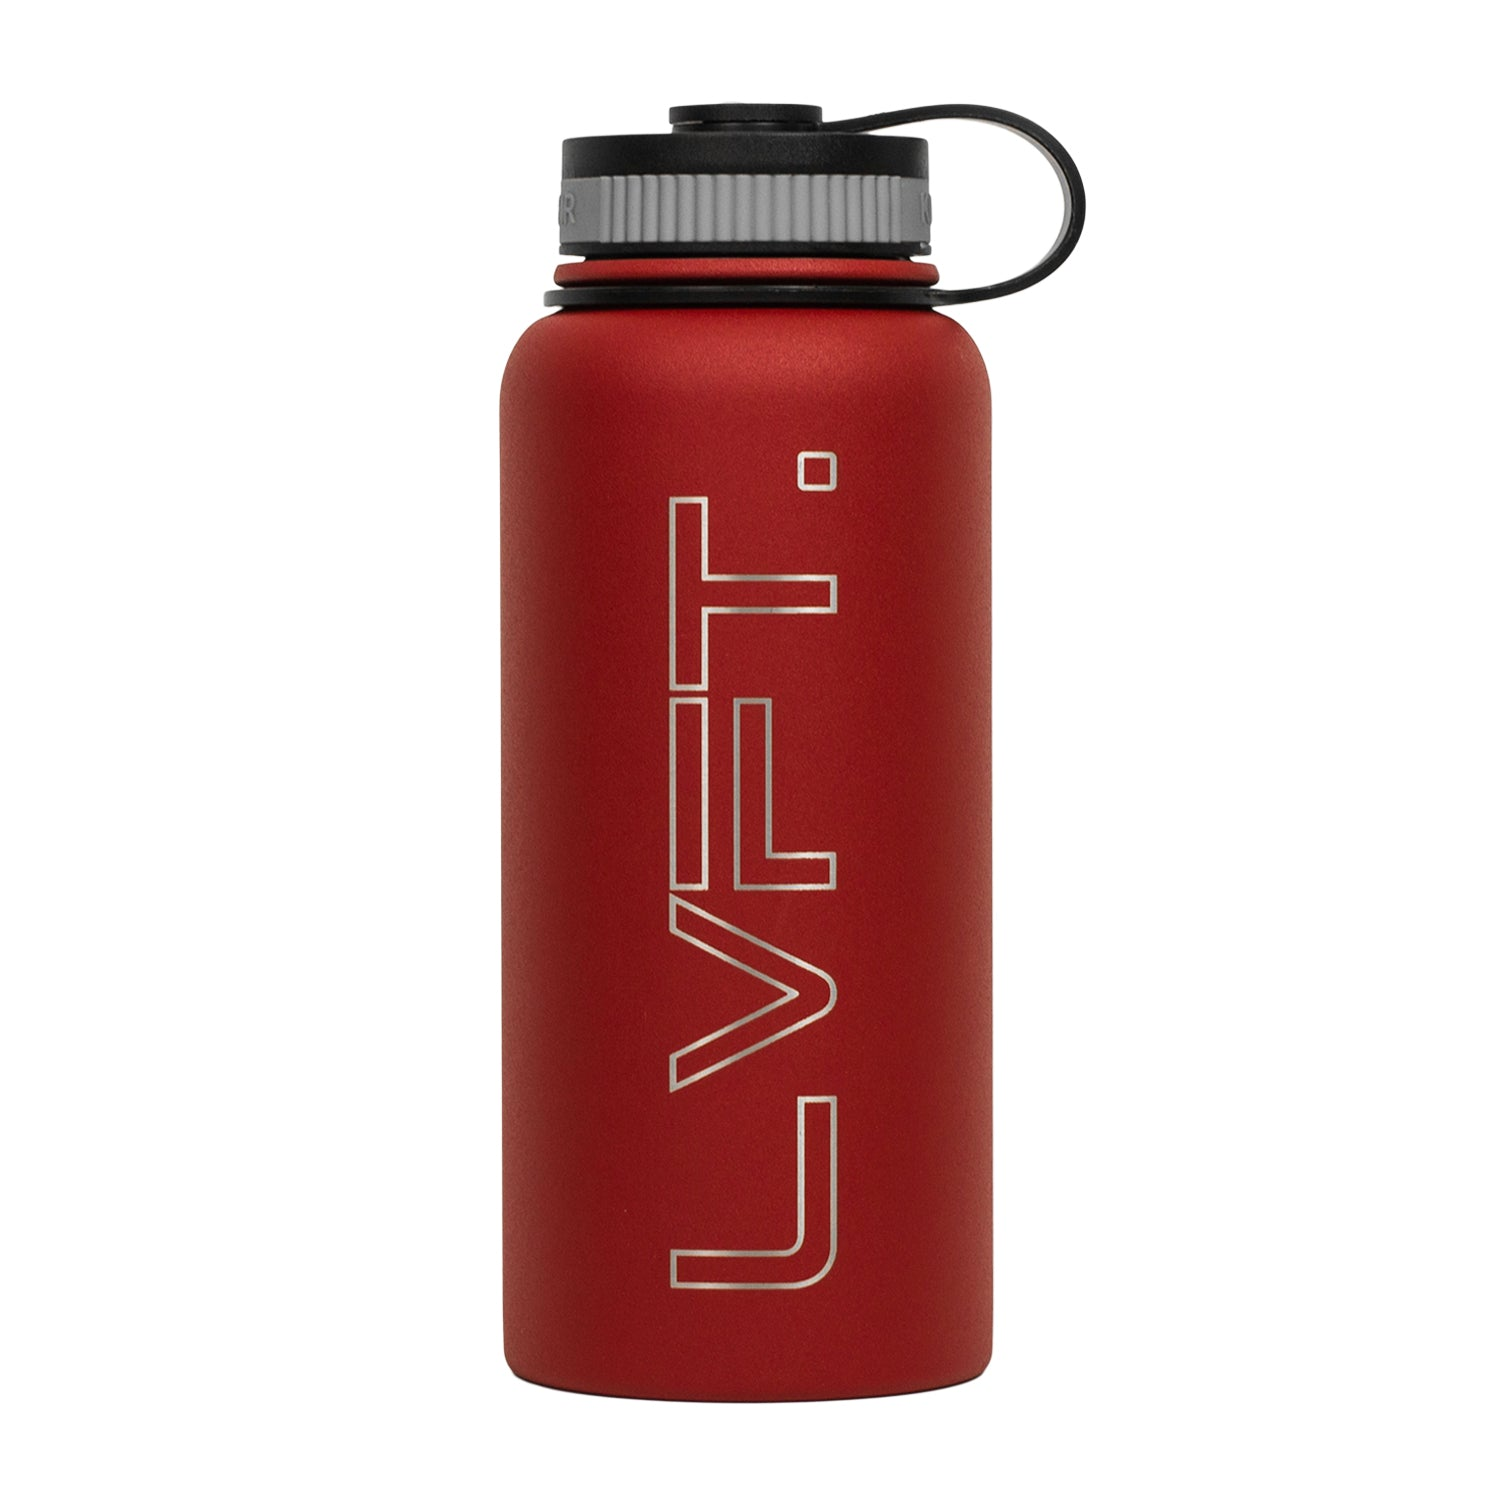 LVFT Stainless Steel Bottle - Red